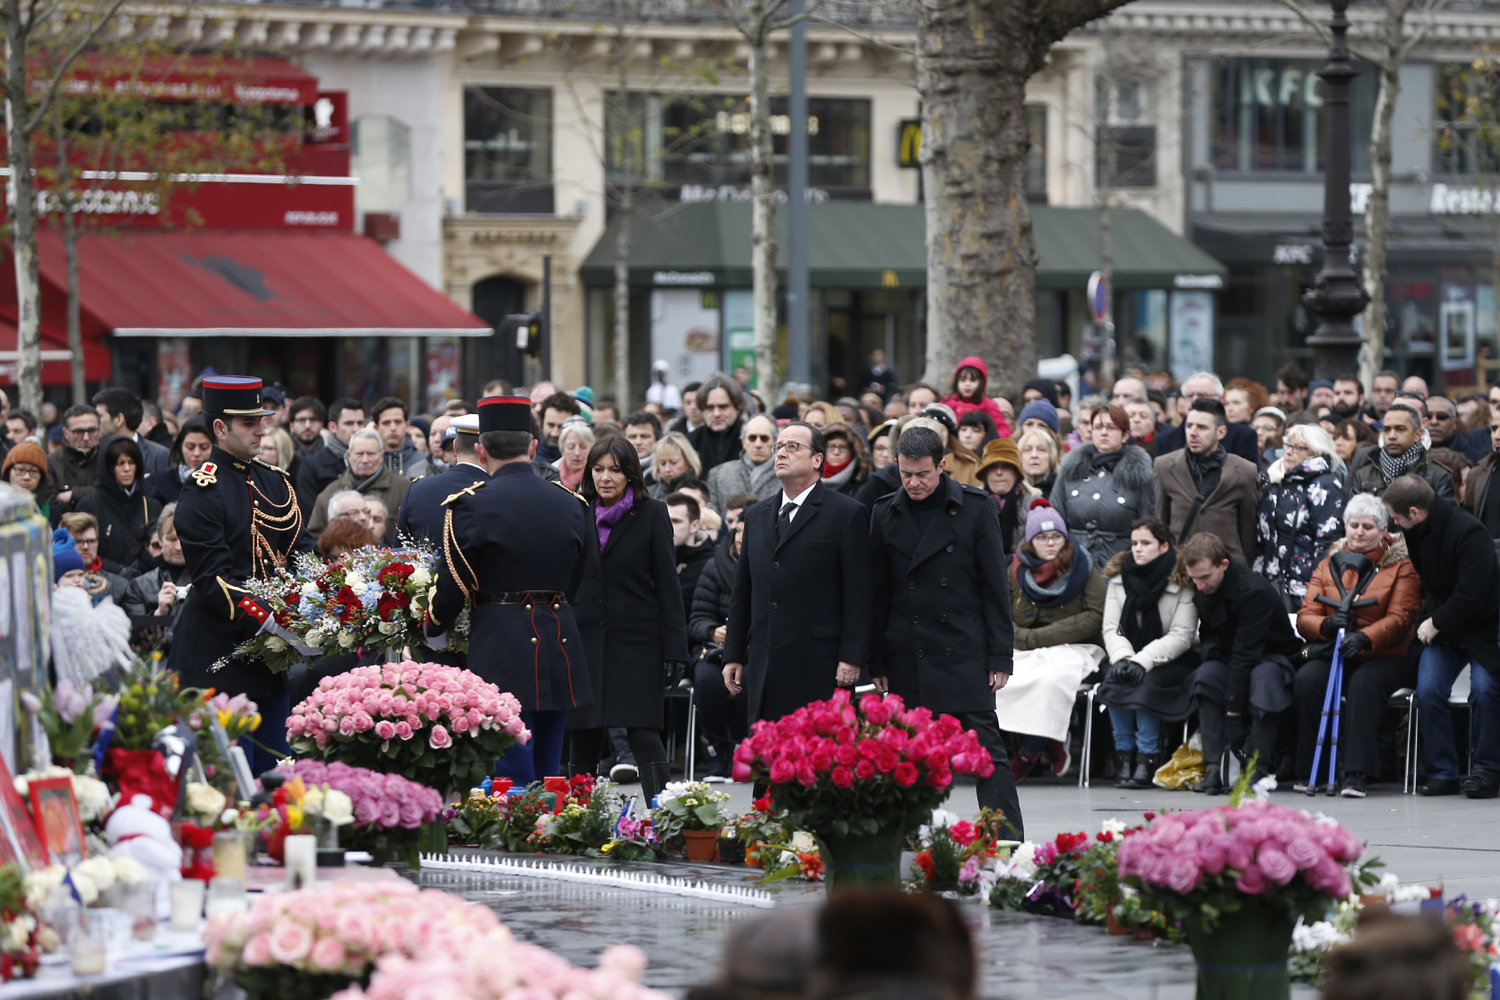 French Paris' mayor Anne Hidalgo (C-L), French President Francois Hollande (C) and French Prime minister Manuel Valls (C-R), attend a remembrance rally at Place de la Republique (Republic square) on January 10, 2016 in Paris, to mark a year since 1.6 million people thronged the French capital in a show of unity after attacks on the Charlie Hebdo newspaper and a Jewish supermarket. Just as it was last year, the vast Place de la Republique will be the focus of the gathering as people reiterate their support for freedom of expression and remember the other victims of what would become a year of jihadist outrages in France, culminating in the November 13 coordinated shootings and suicide bombings that killed 130 people and were claimed by the Islamic State (IS) group. AFP PHOTO / THOMAS SAMSON / AFP / THOMAS SAMSON